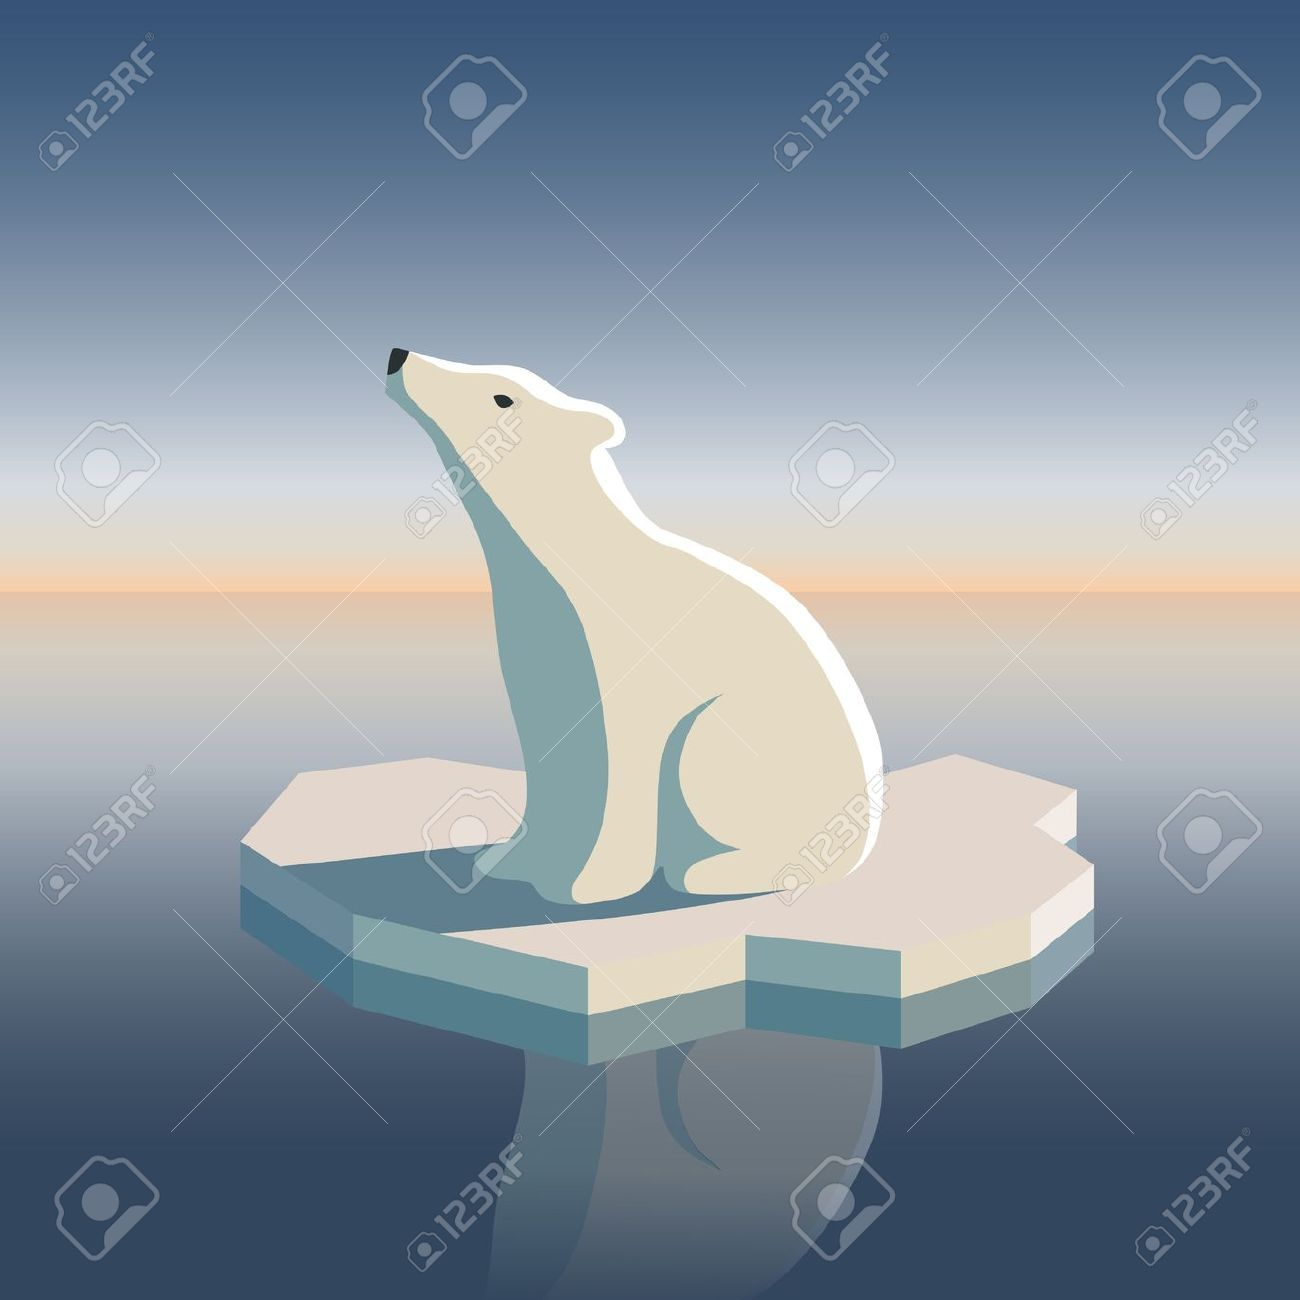 banner black and white Polar bear on ice clipart. Pin by e m